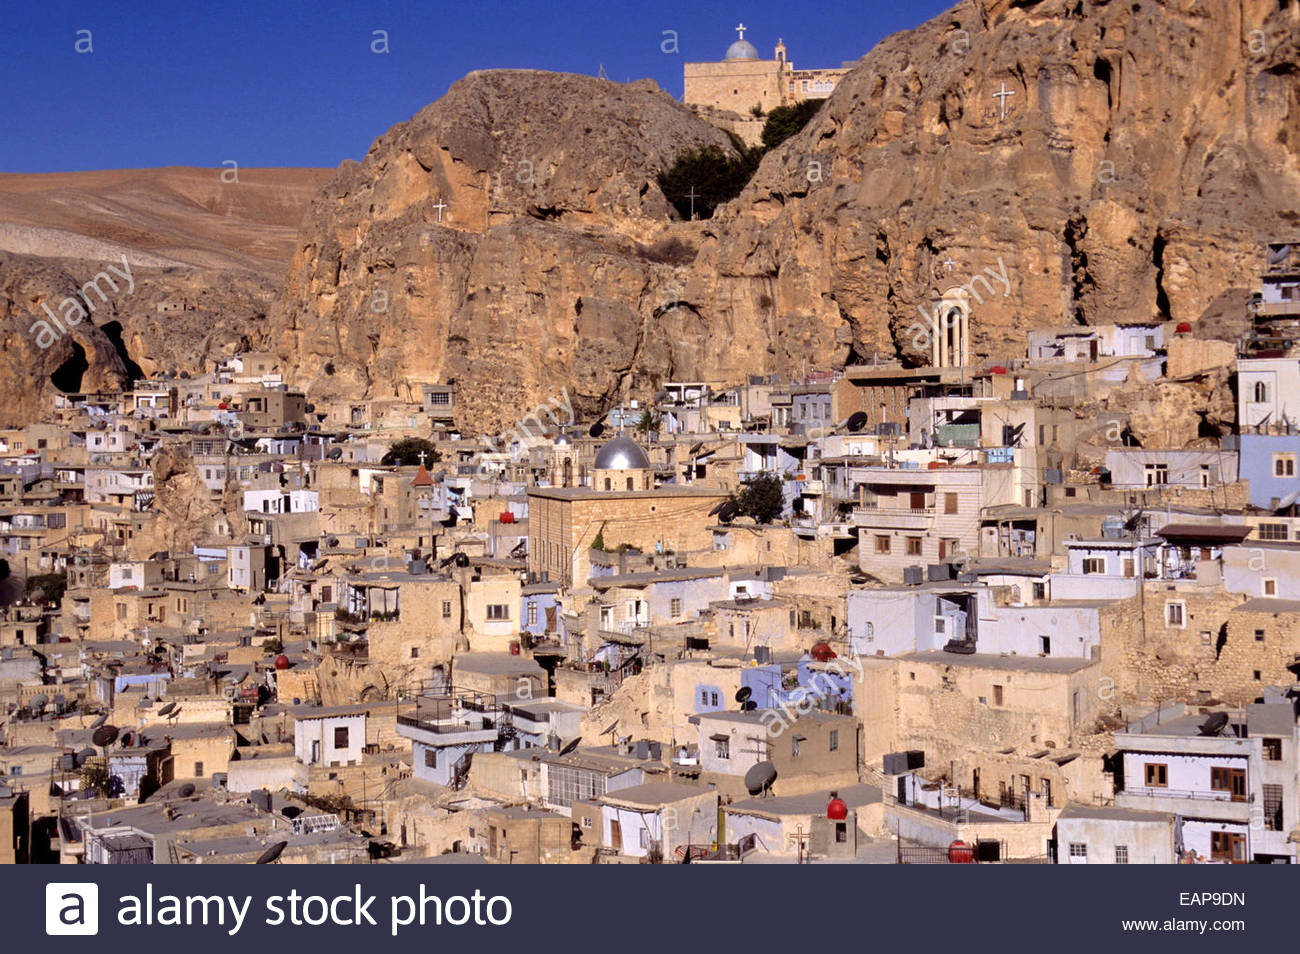 General view on Maaloula town, Syria. - Stock Image